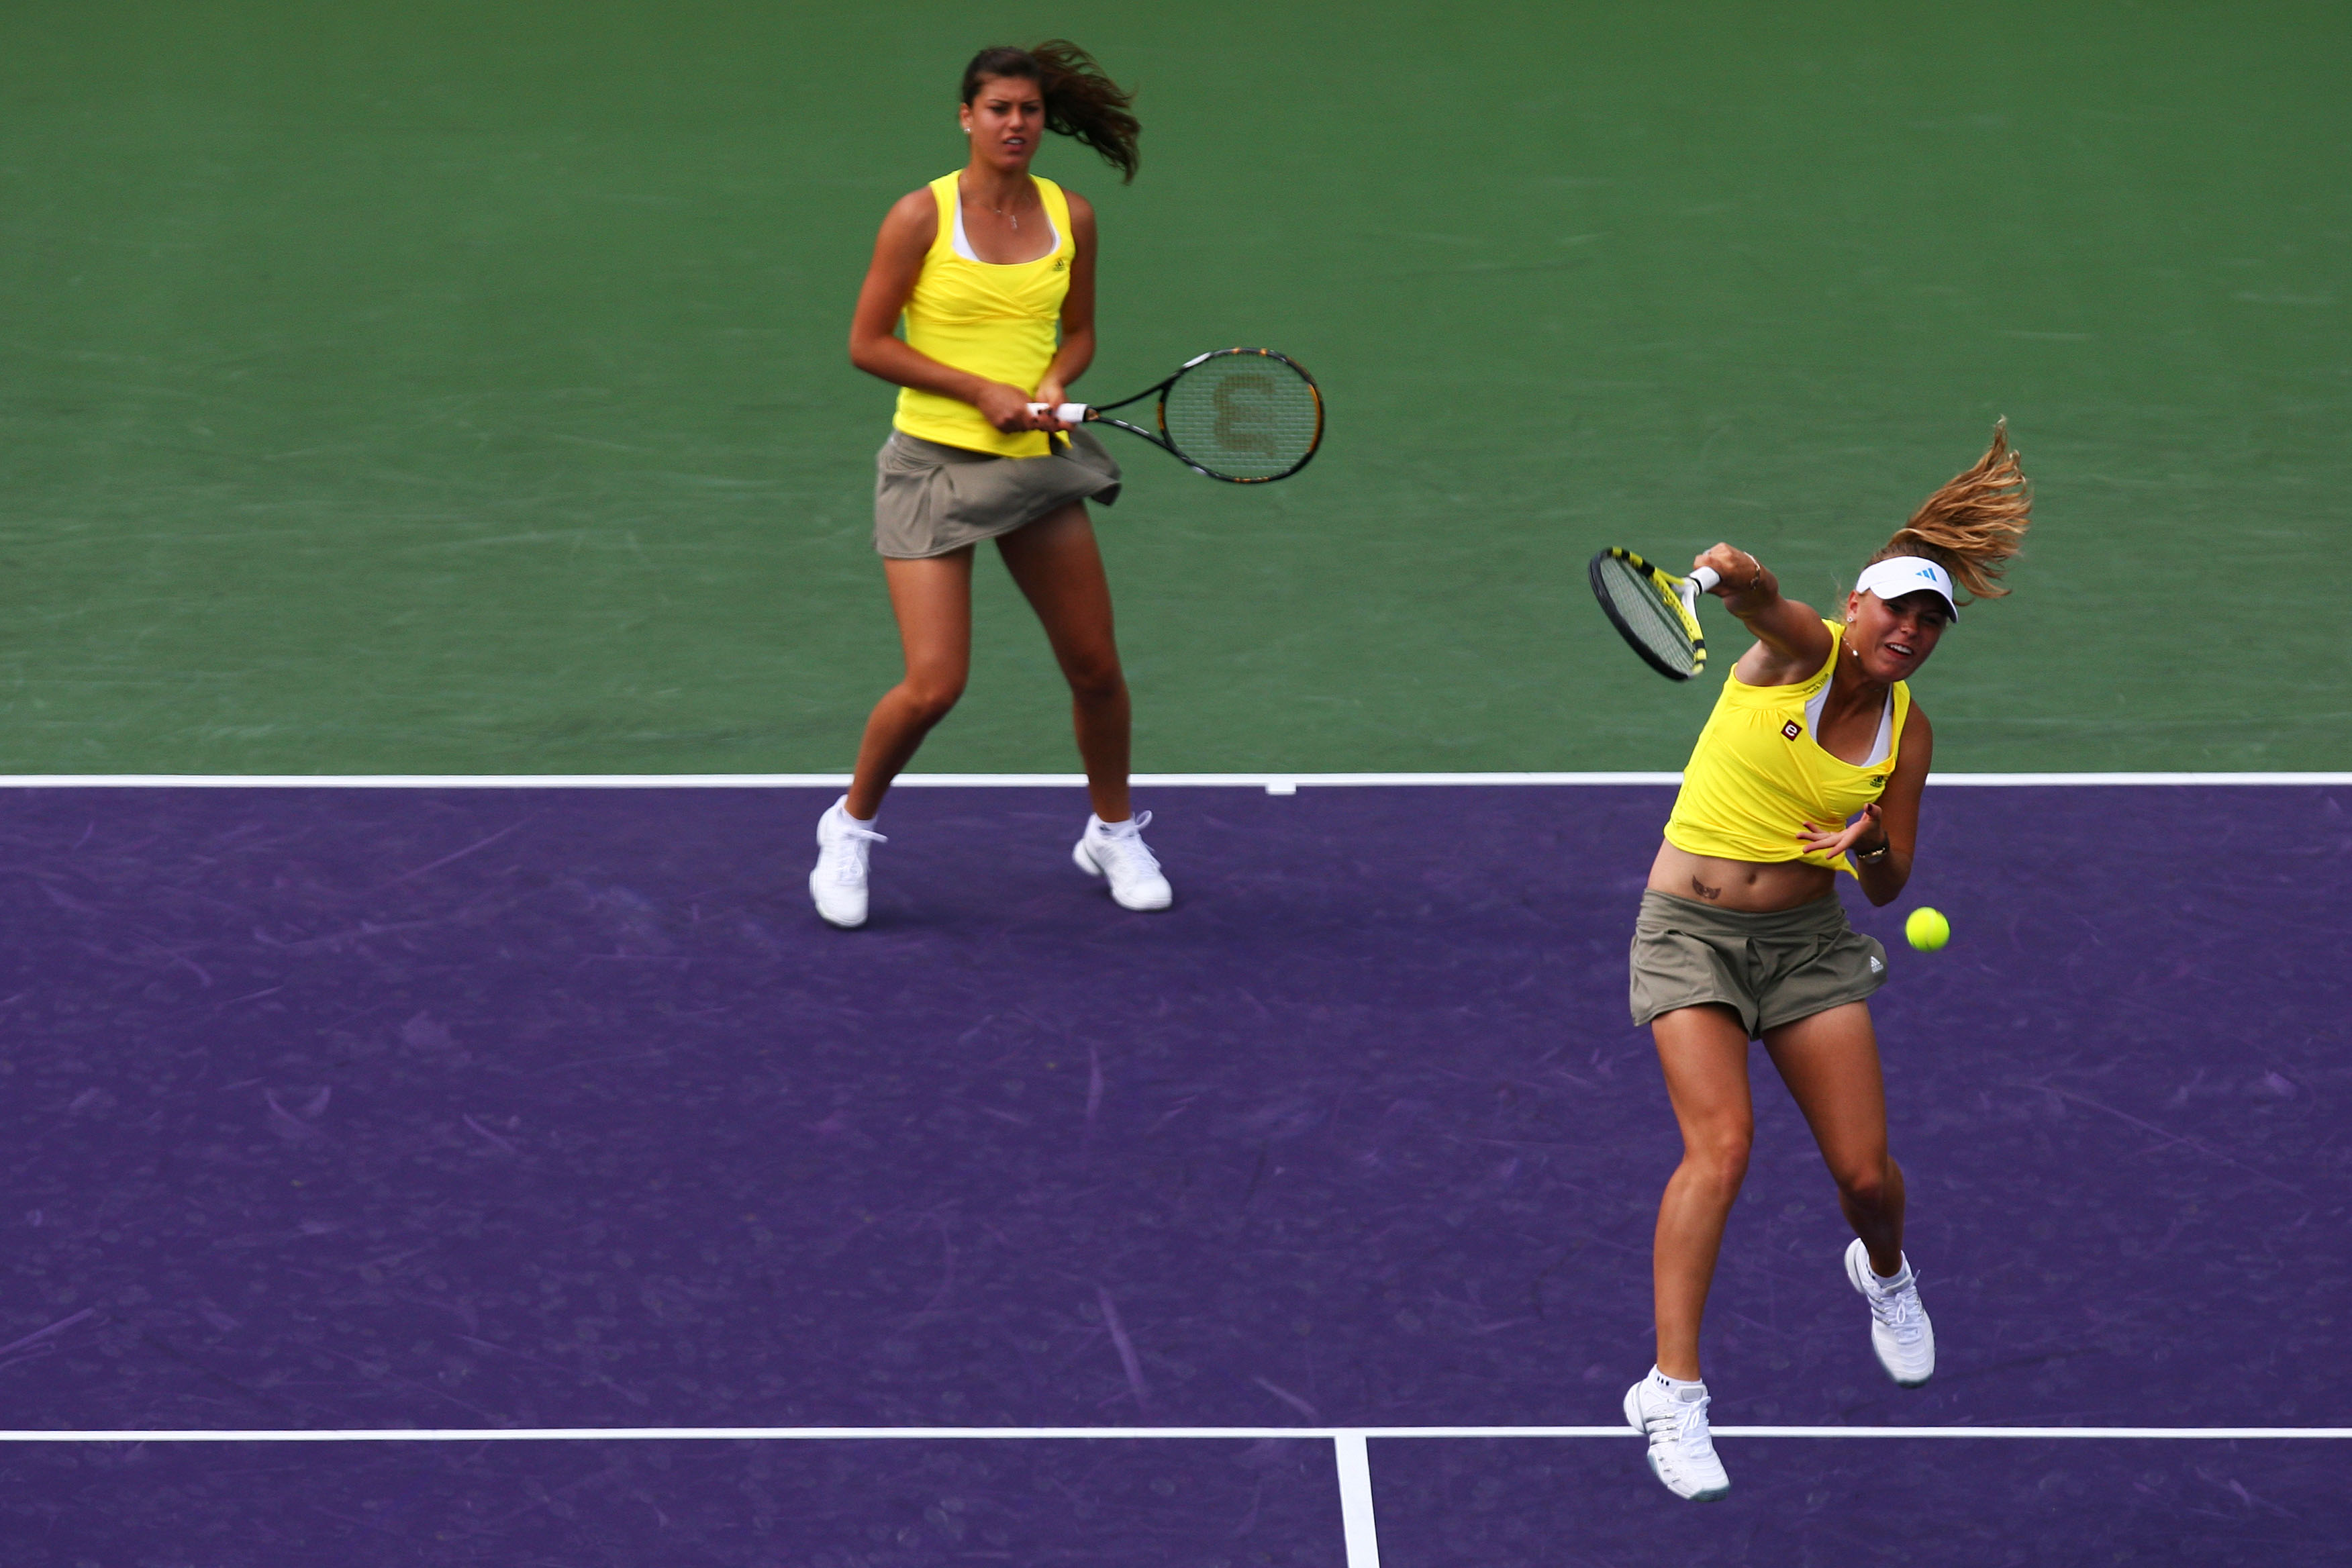 Matching neon safari kits for Wozniacki and her doubles partner Sorana Cirstea. Wozniacki played doubles?